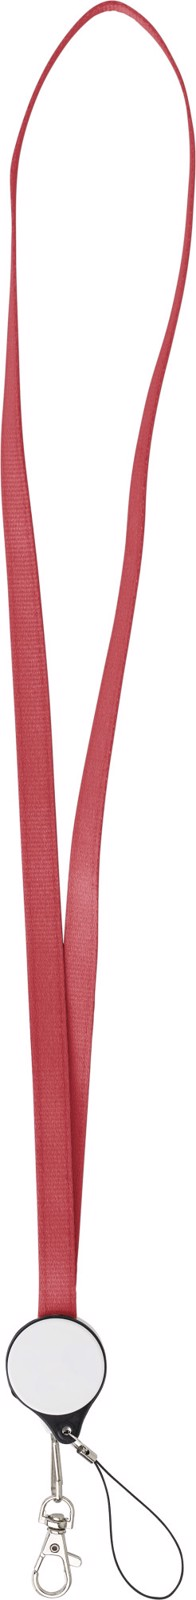 ABS 2-in-1 lanyard - Red